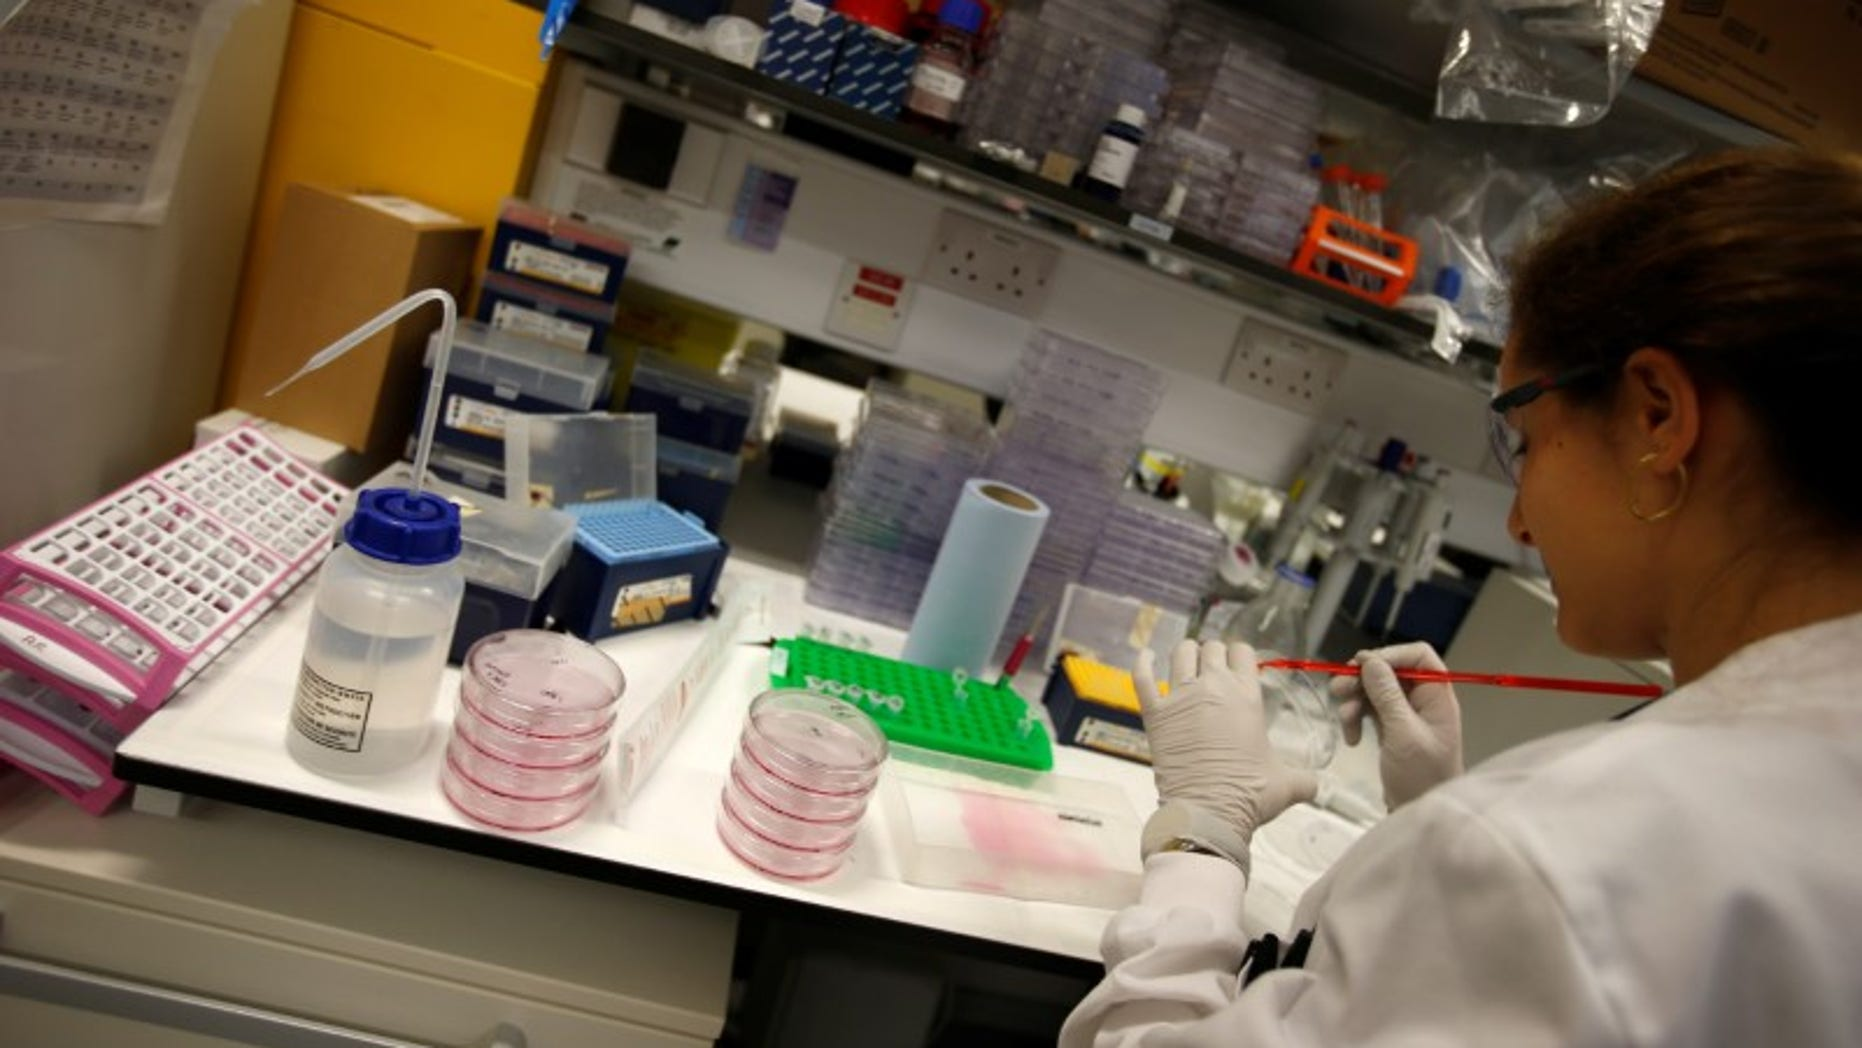 A scientist working in cancer research laboratories at the Old Road Campus research building at Oxford University, in Oxford